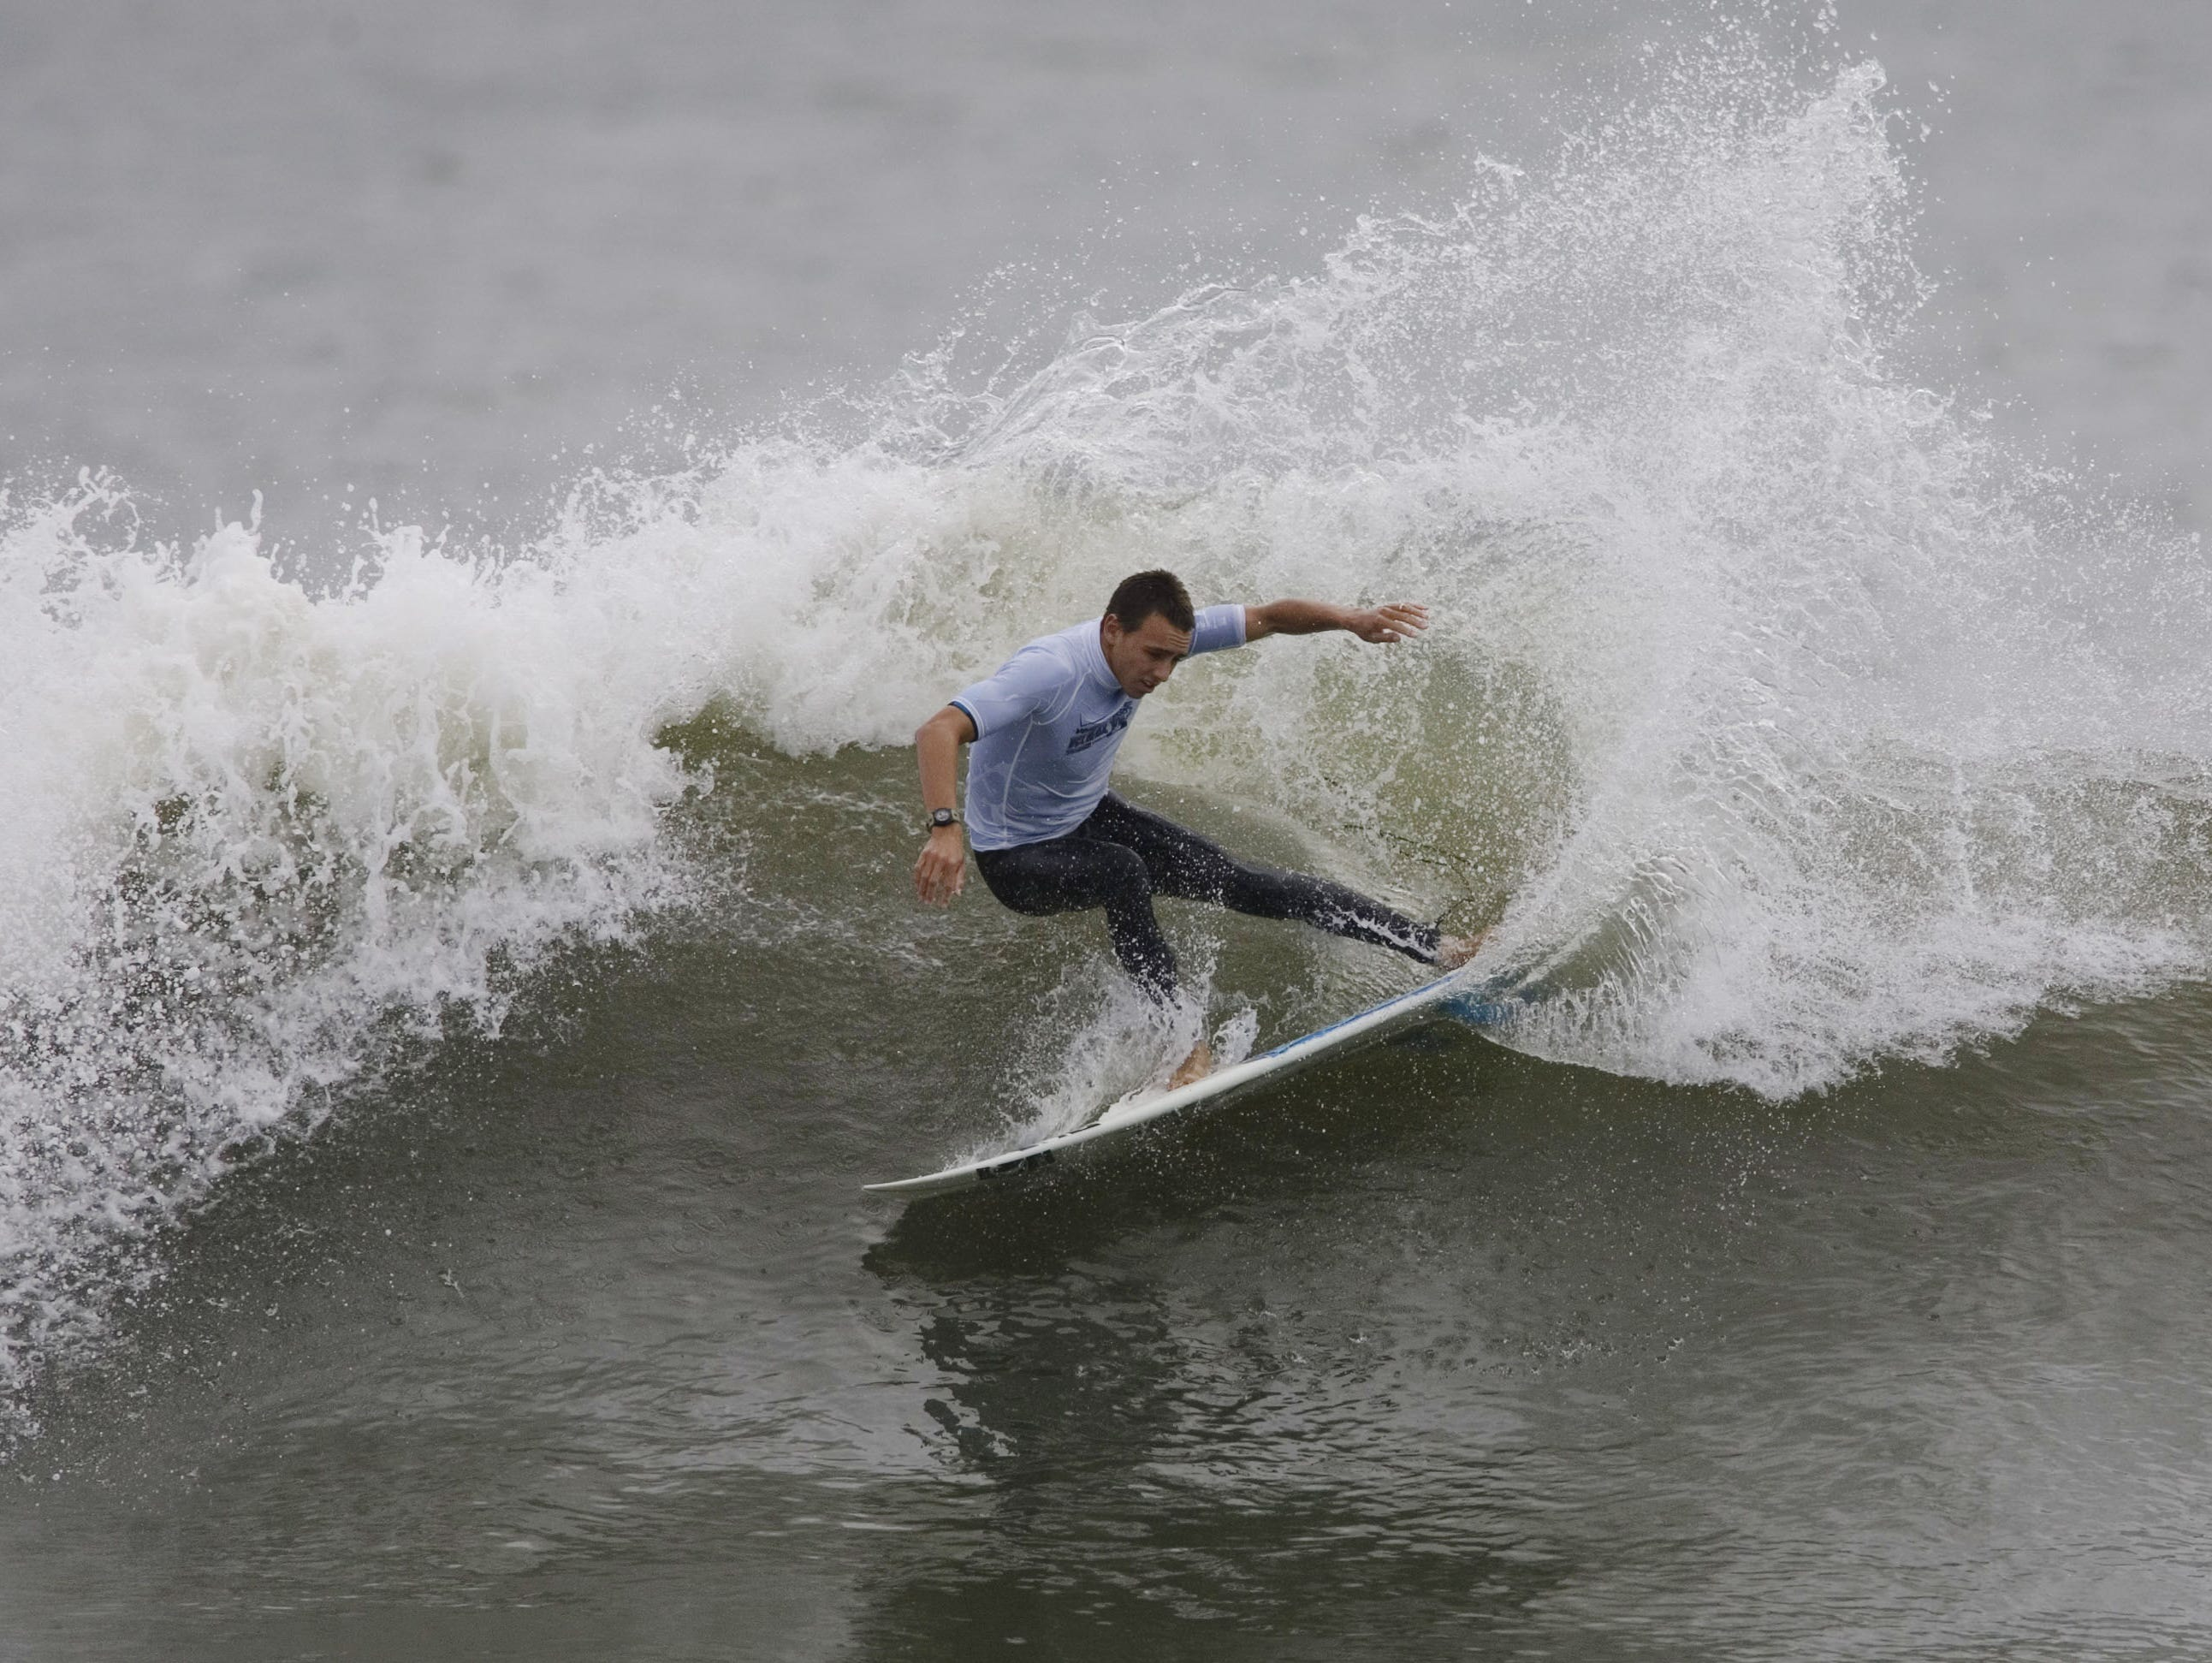 Early heats of day one competition of the Foster's Belmar Pro & Fins Jr. Pro take place at the 16th Ave beach in Belmar on Saturday, September 12, 2009. Brett Barley competes in the Jr. Pro division.  Doug Hood/ Asbury Park Press- Belmar, NJ- 09.12.09 (#5875)